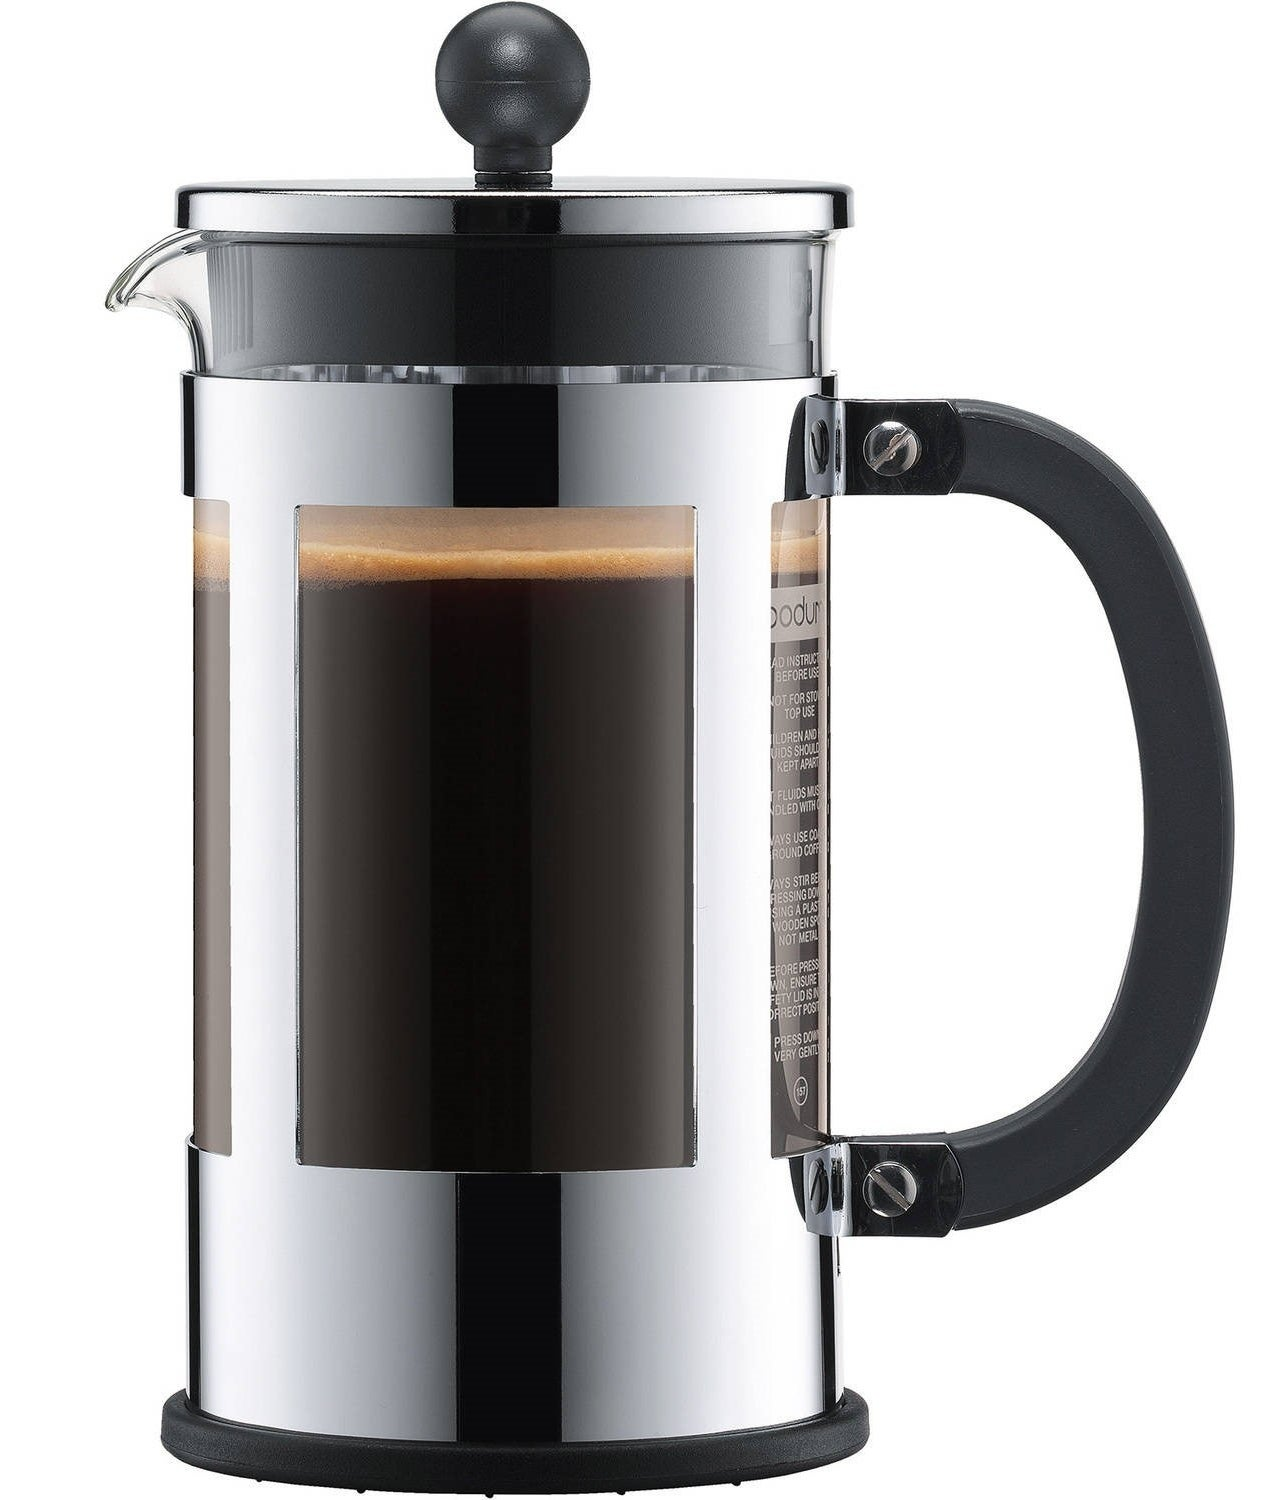 Quick coffee is convenient, but it also usually tastes as such. Take a little extra care making your morning cup 'o joe by spending some time with this durable French press. It's ideal for finely ground beans and honestly will just look super fancy on your kitchen counter.Get it from Walmart for $19.64+ (available in 3-cup, 4-cup, or 8-cup options).